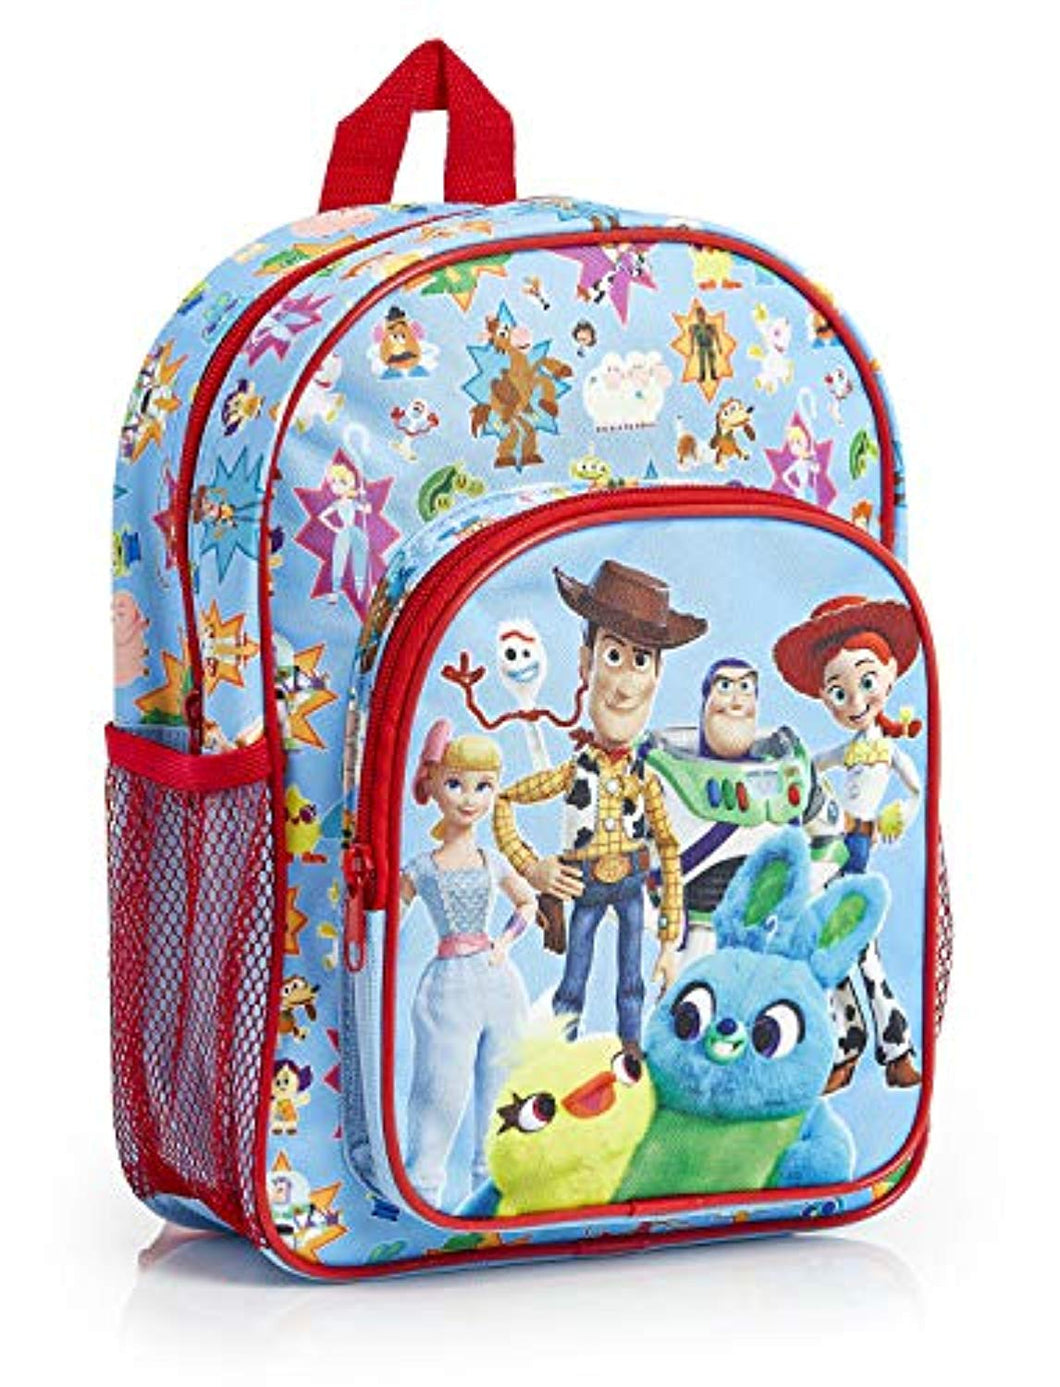 Toy Story 4 Backpack for Kids with All Over Toys Print, Fun Toddlers Rucksack with Forky Buzz Woody Ducky & Bunny, Perfect Children School Bag Nursery Or Preschool Bag, Gifts for Boys Girls - iBuy Africa